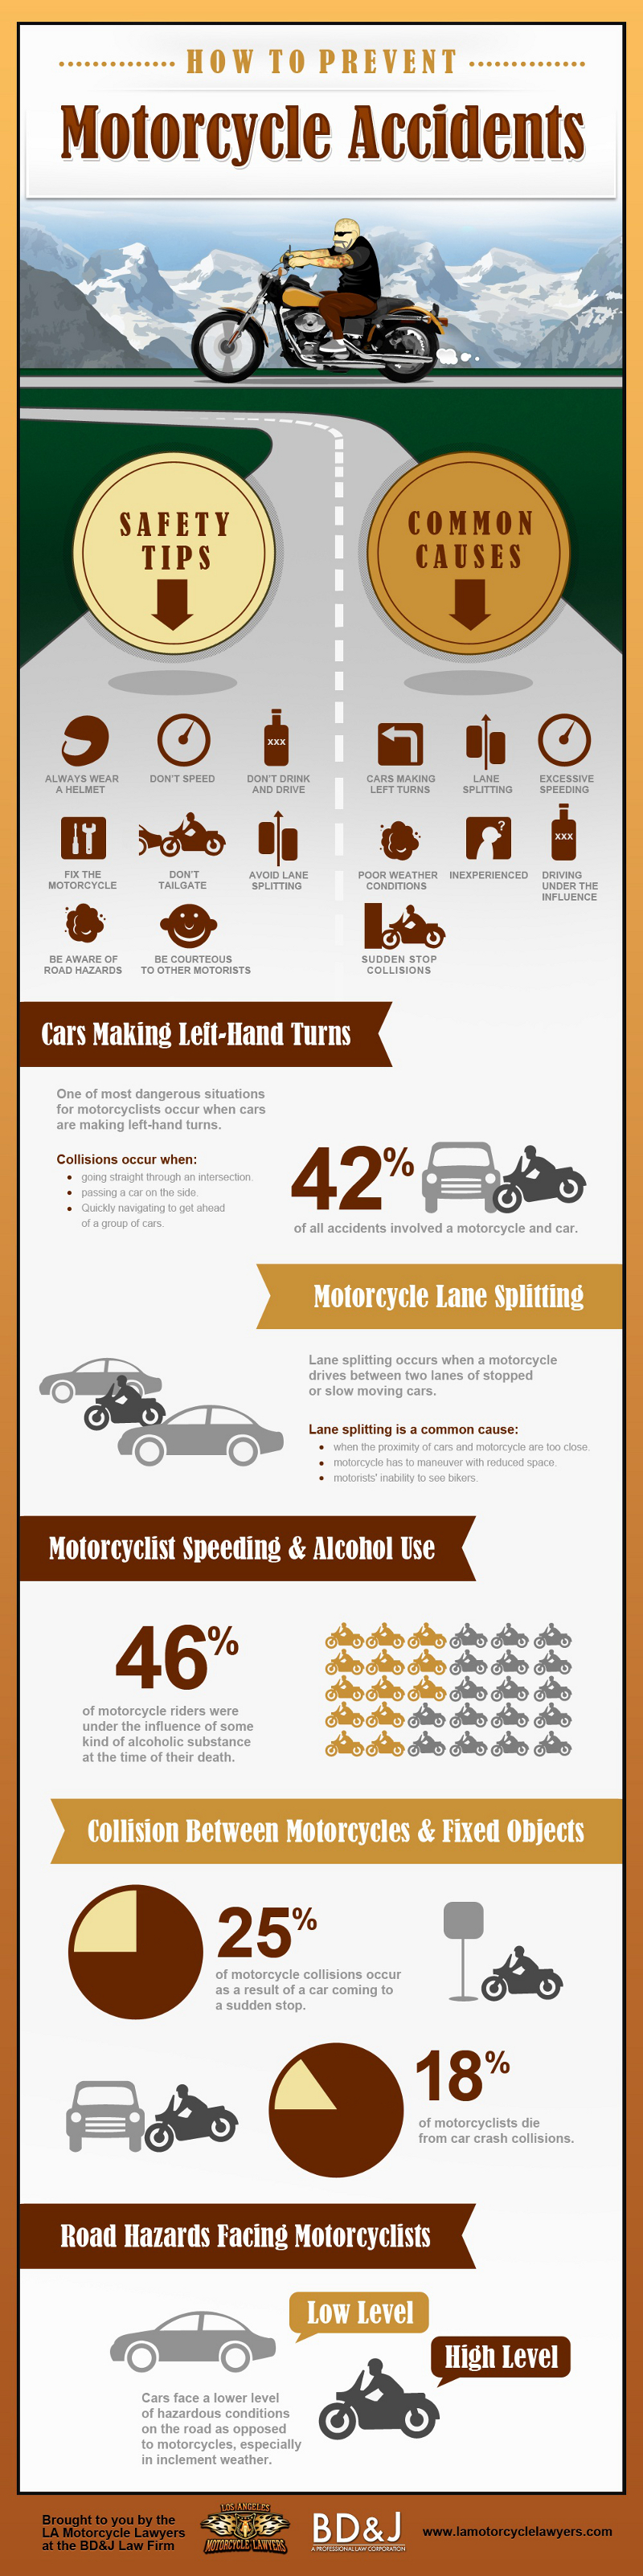 Motorcycle-Accident-Common-Causes-and-Prevention